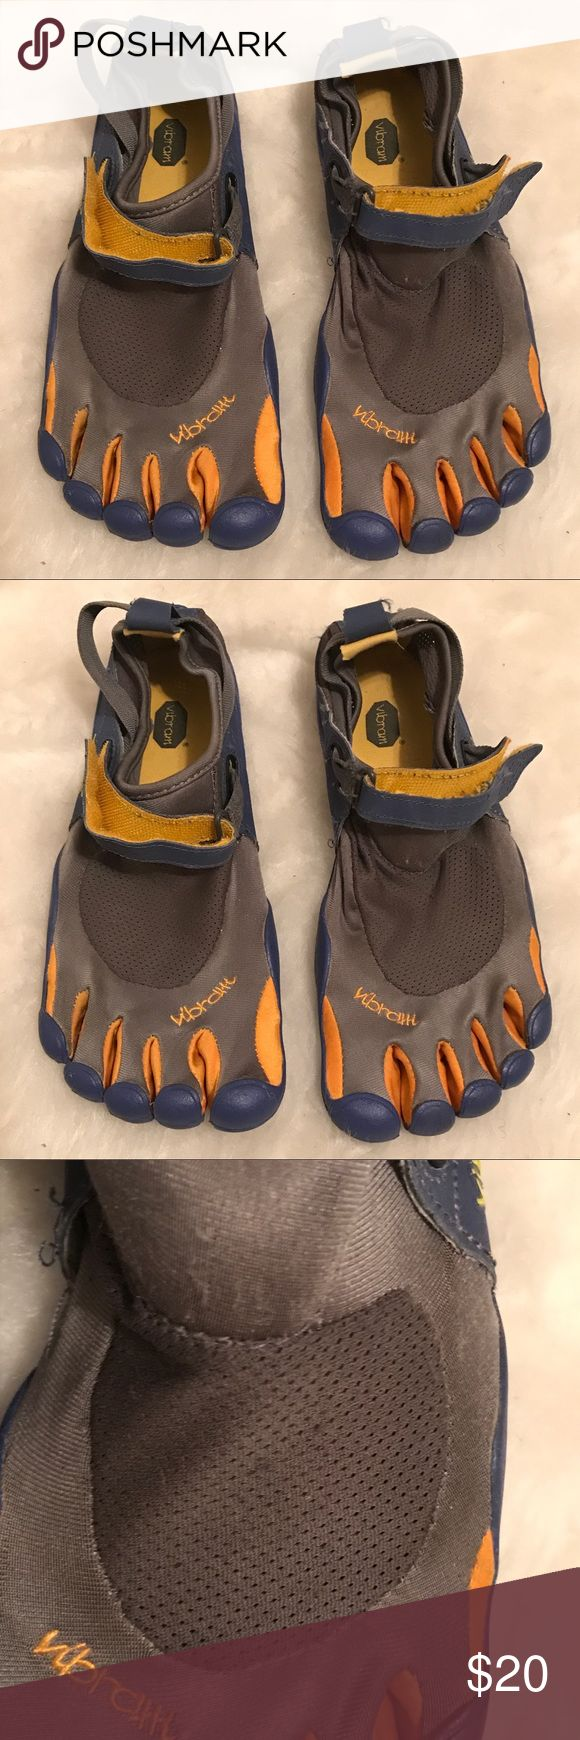 Vibram five finger shoes- Sz 40 Vibram five finger shoes size 40 (refer to size chart in pictures). Colors are gray blue and gold. Shoes are in fair condition some unraveling on fabric, soles are in good condition. Vibram Shoes